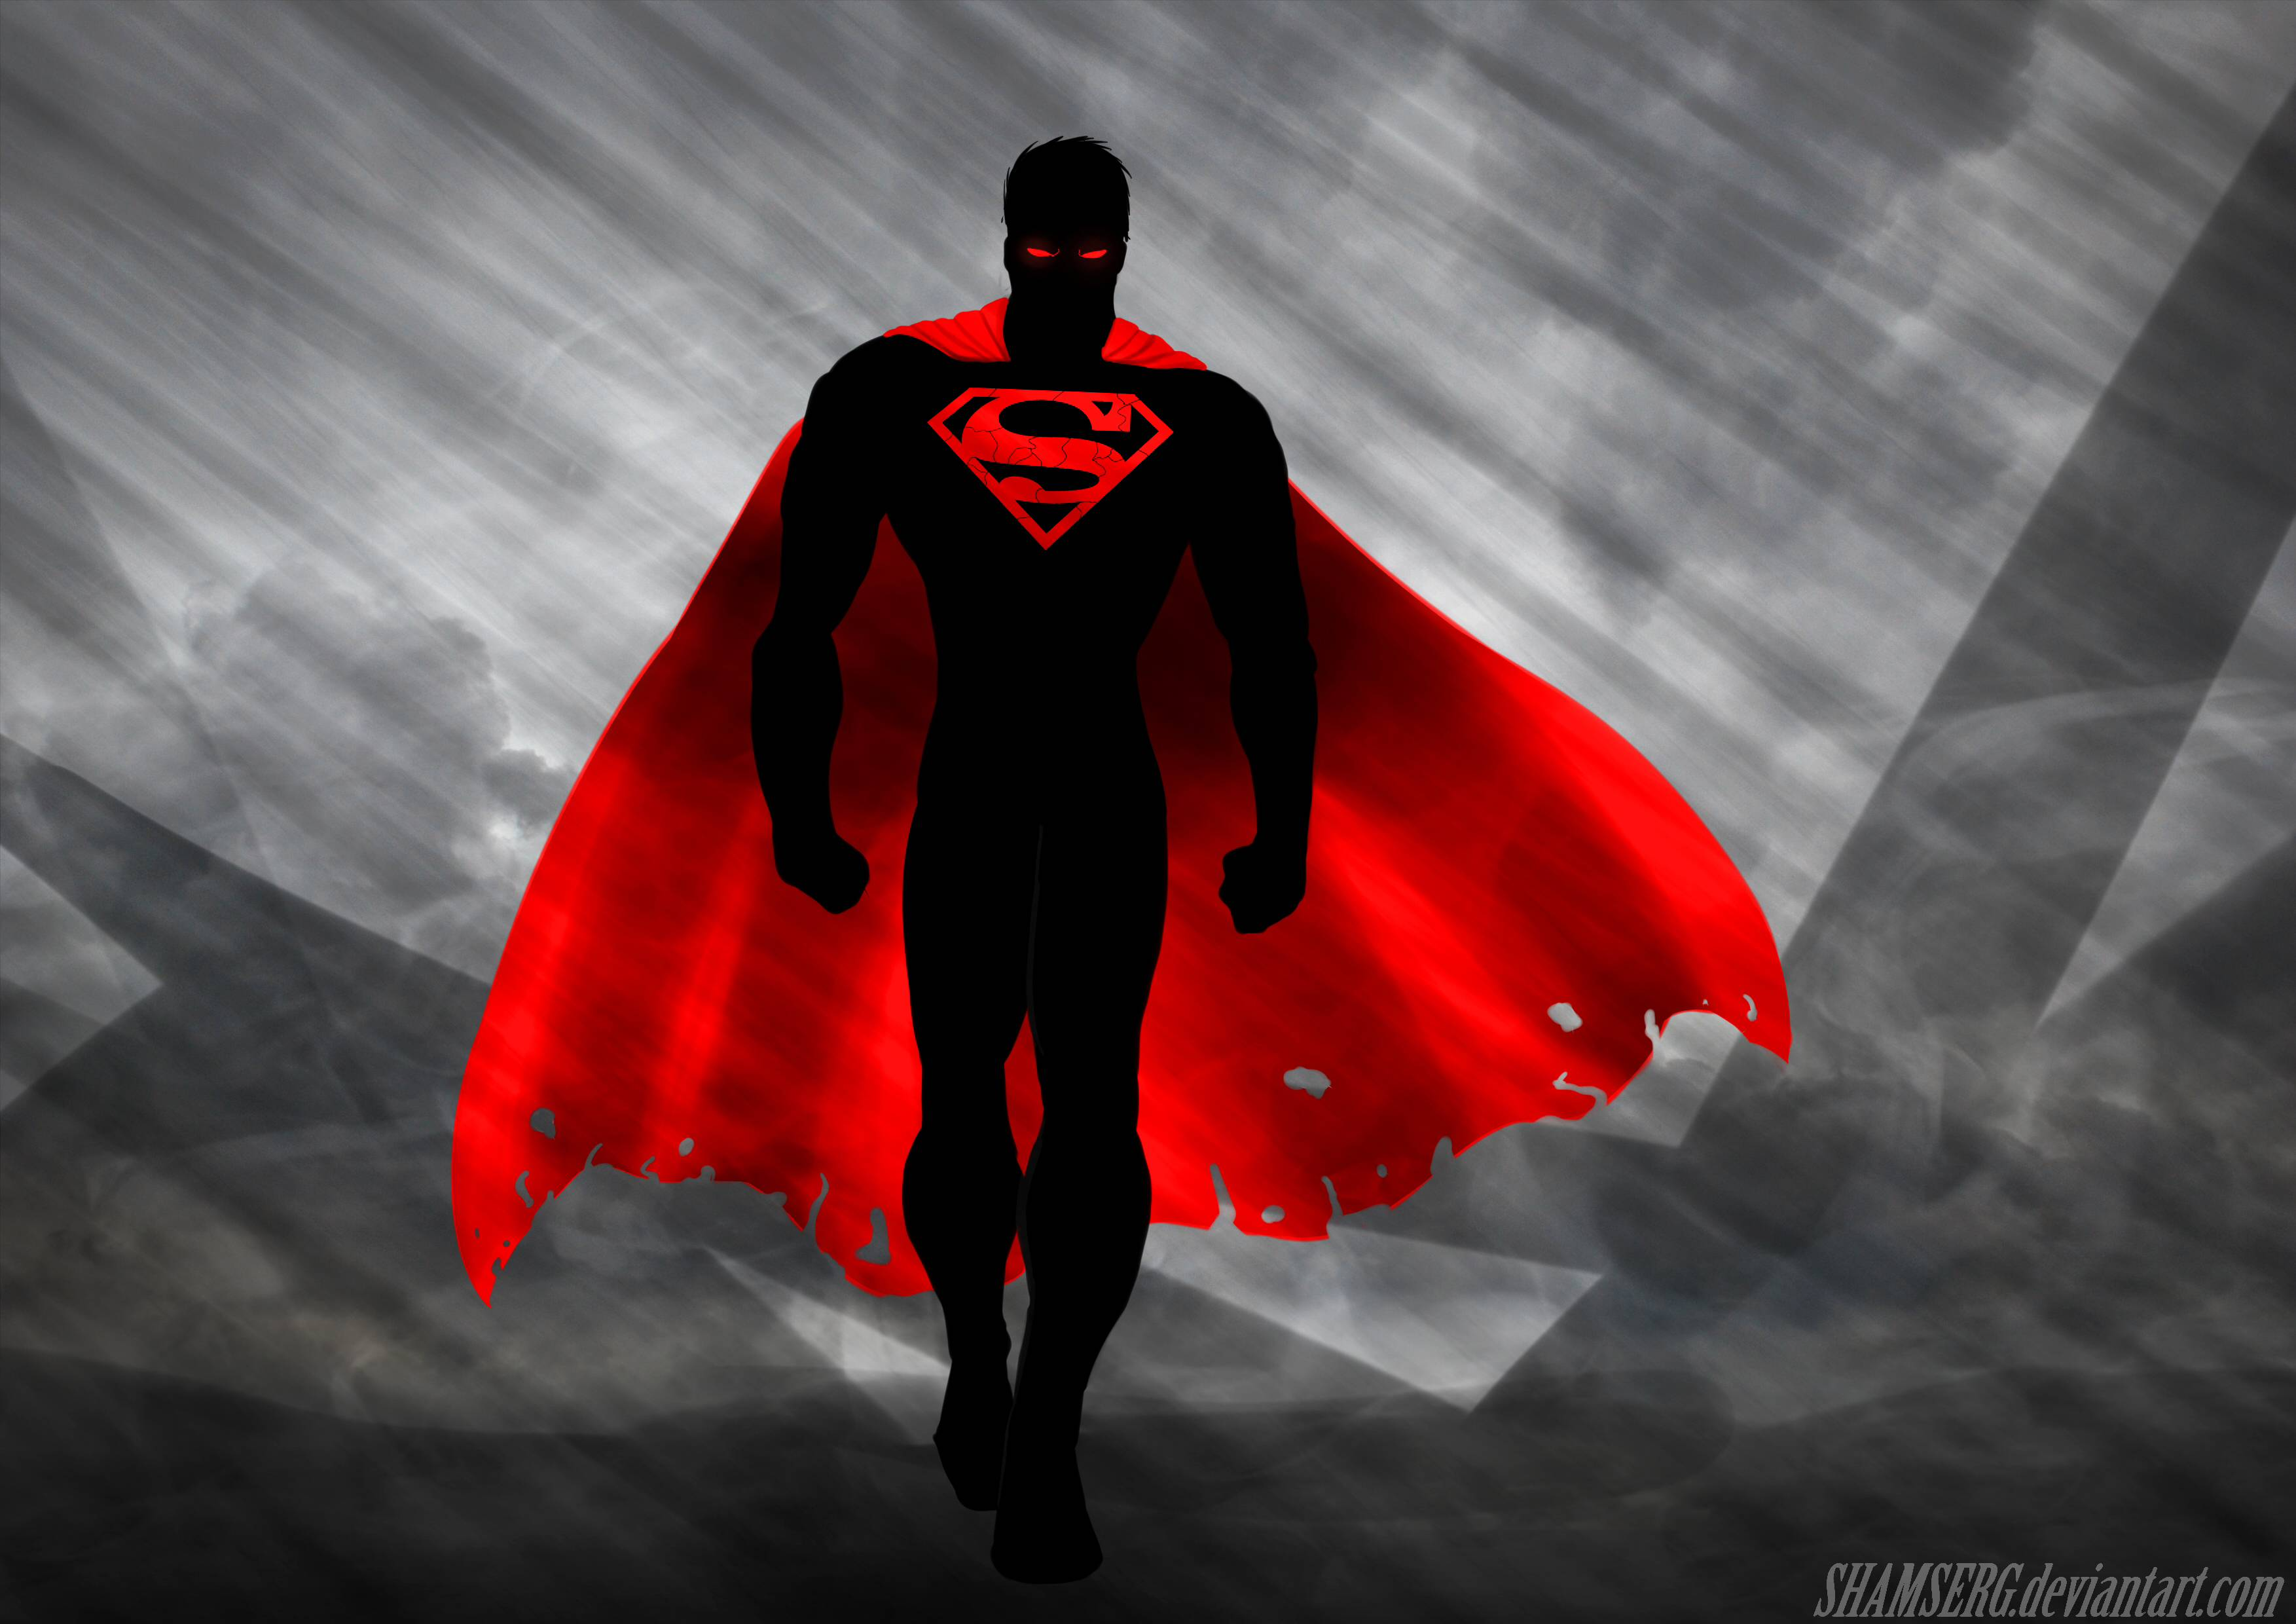 Wallpapers For > Superman Man Of Steel Wallpapers Hd 1920x1080